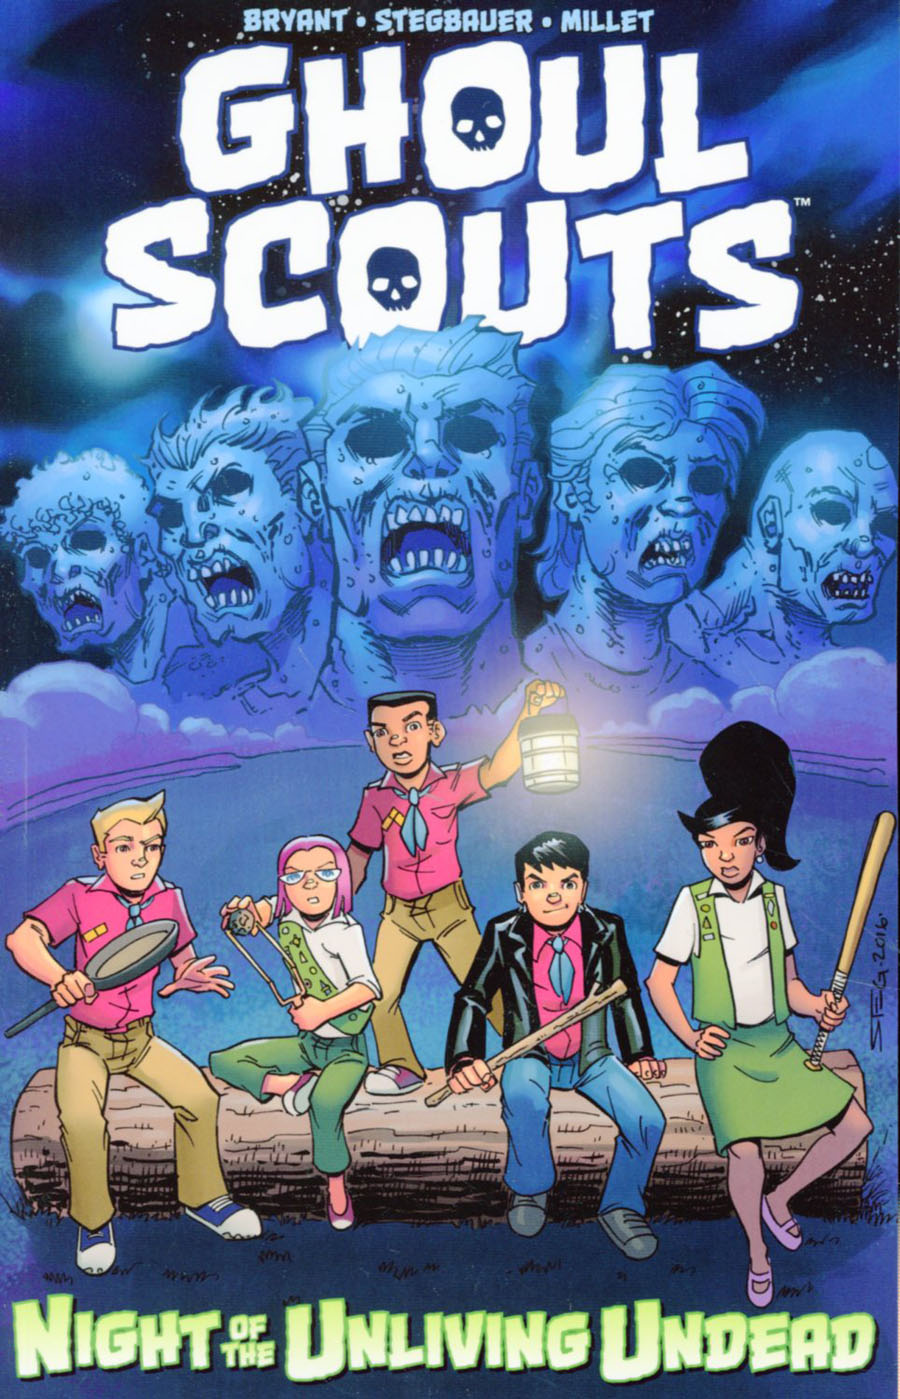 Ghoul Scouts Vol 1 Night Of The Unliving Undead TP